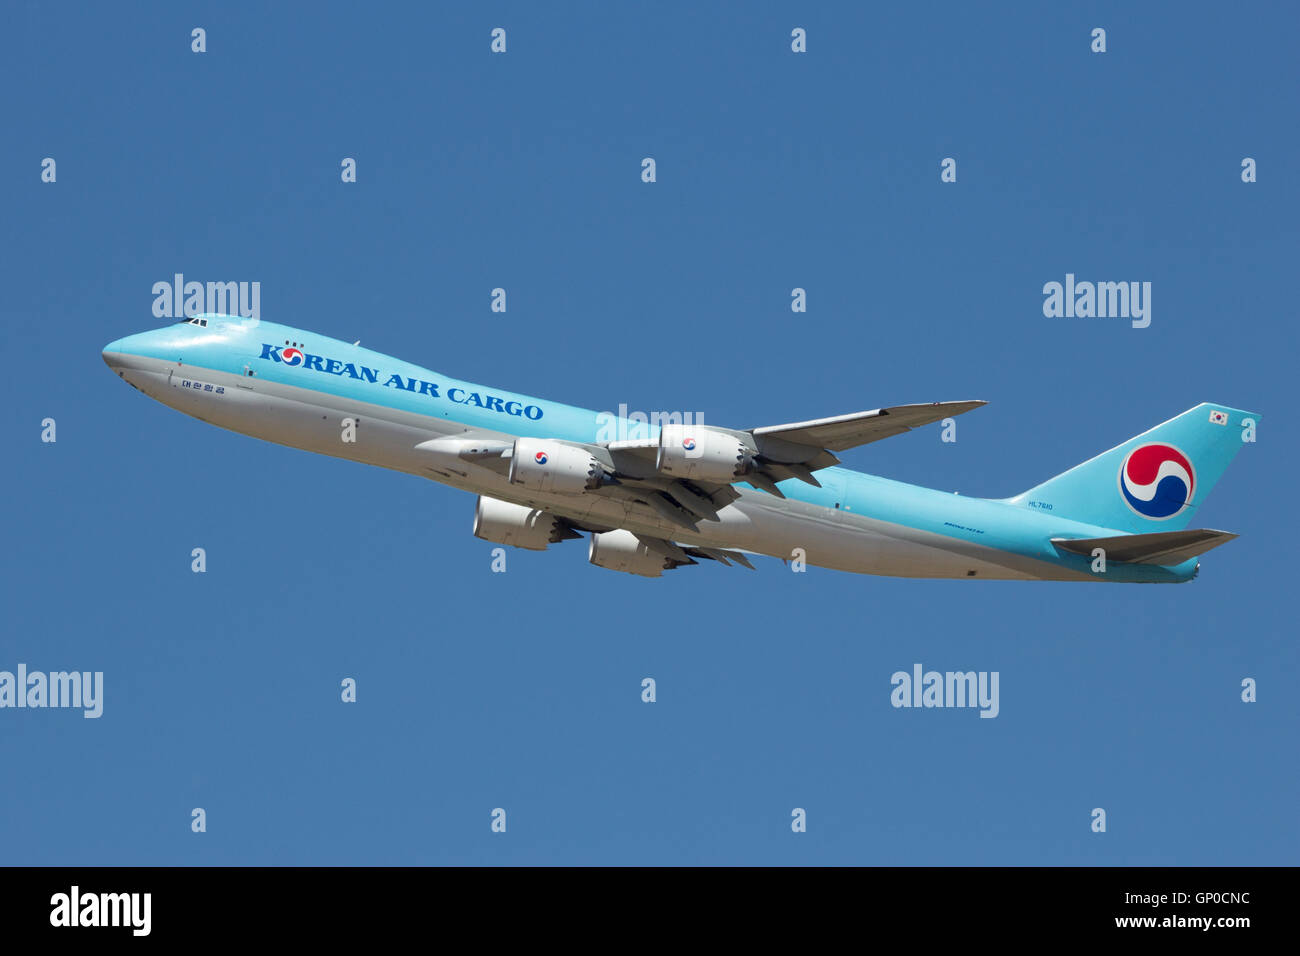 Korean Air Cargo Boeing 747 taking off from Zaragoza airport - Stock Image